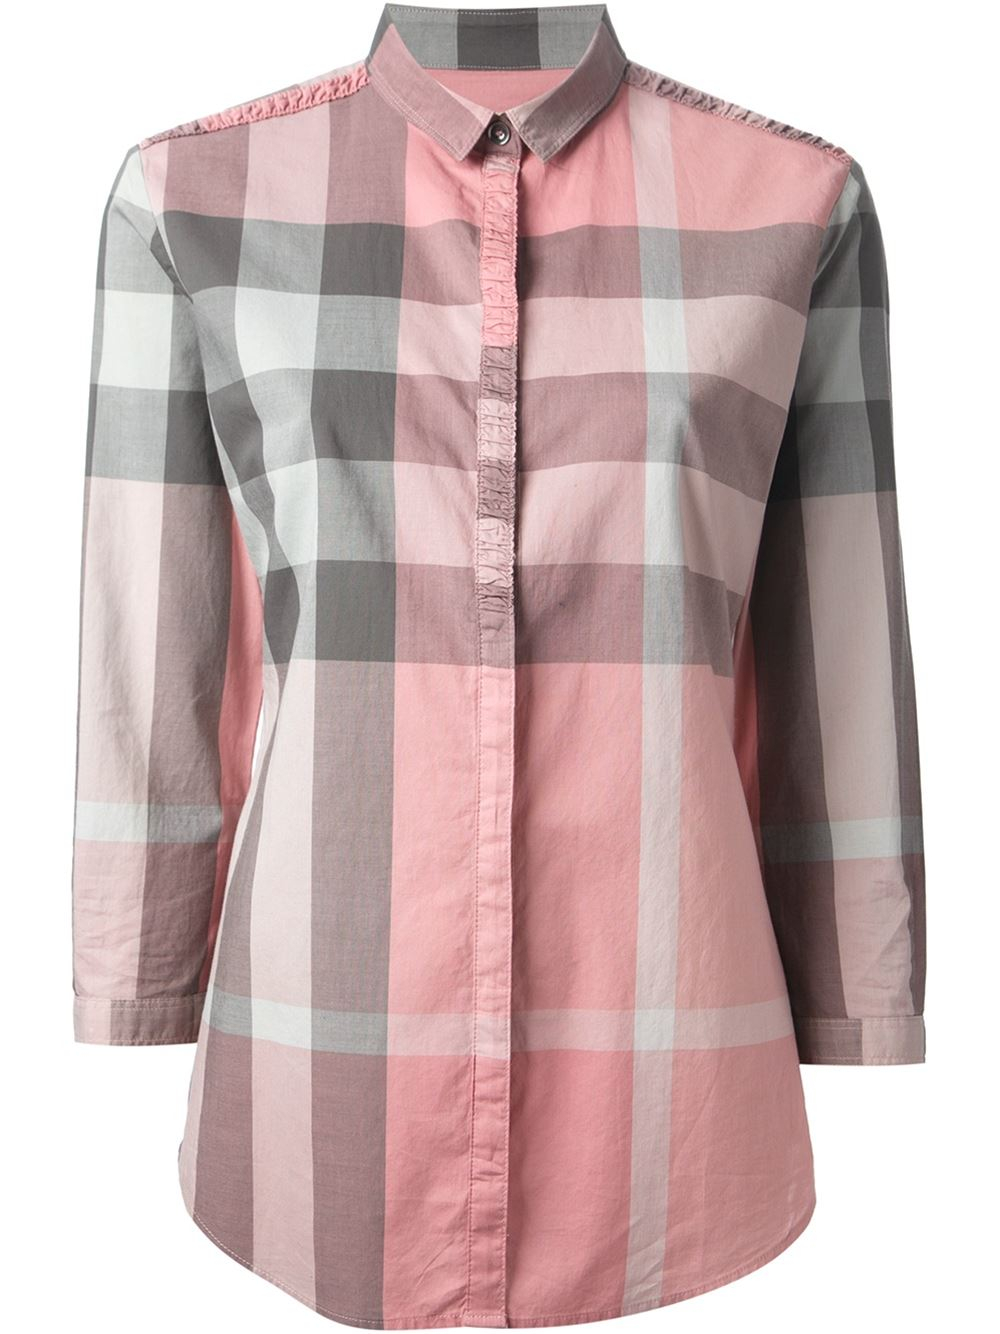 Lyst burberry brit checked shirt in pink for Burberry brit checked shirt